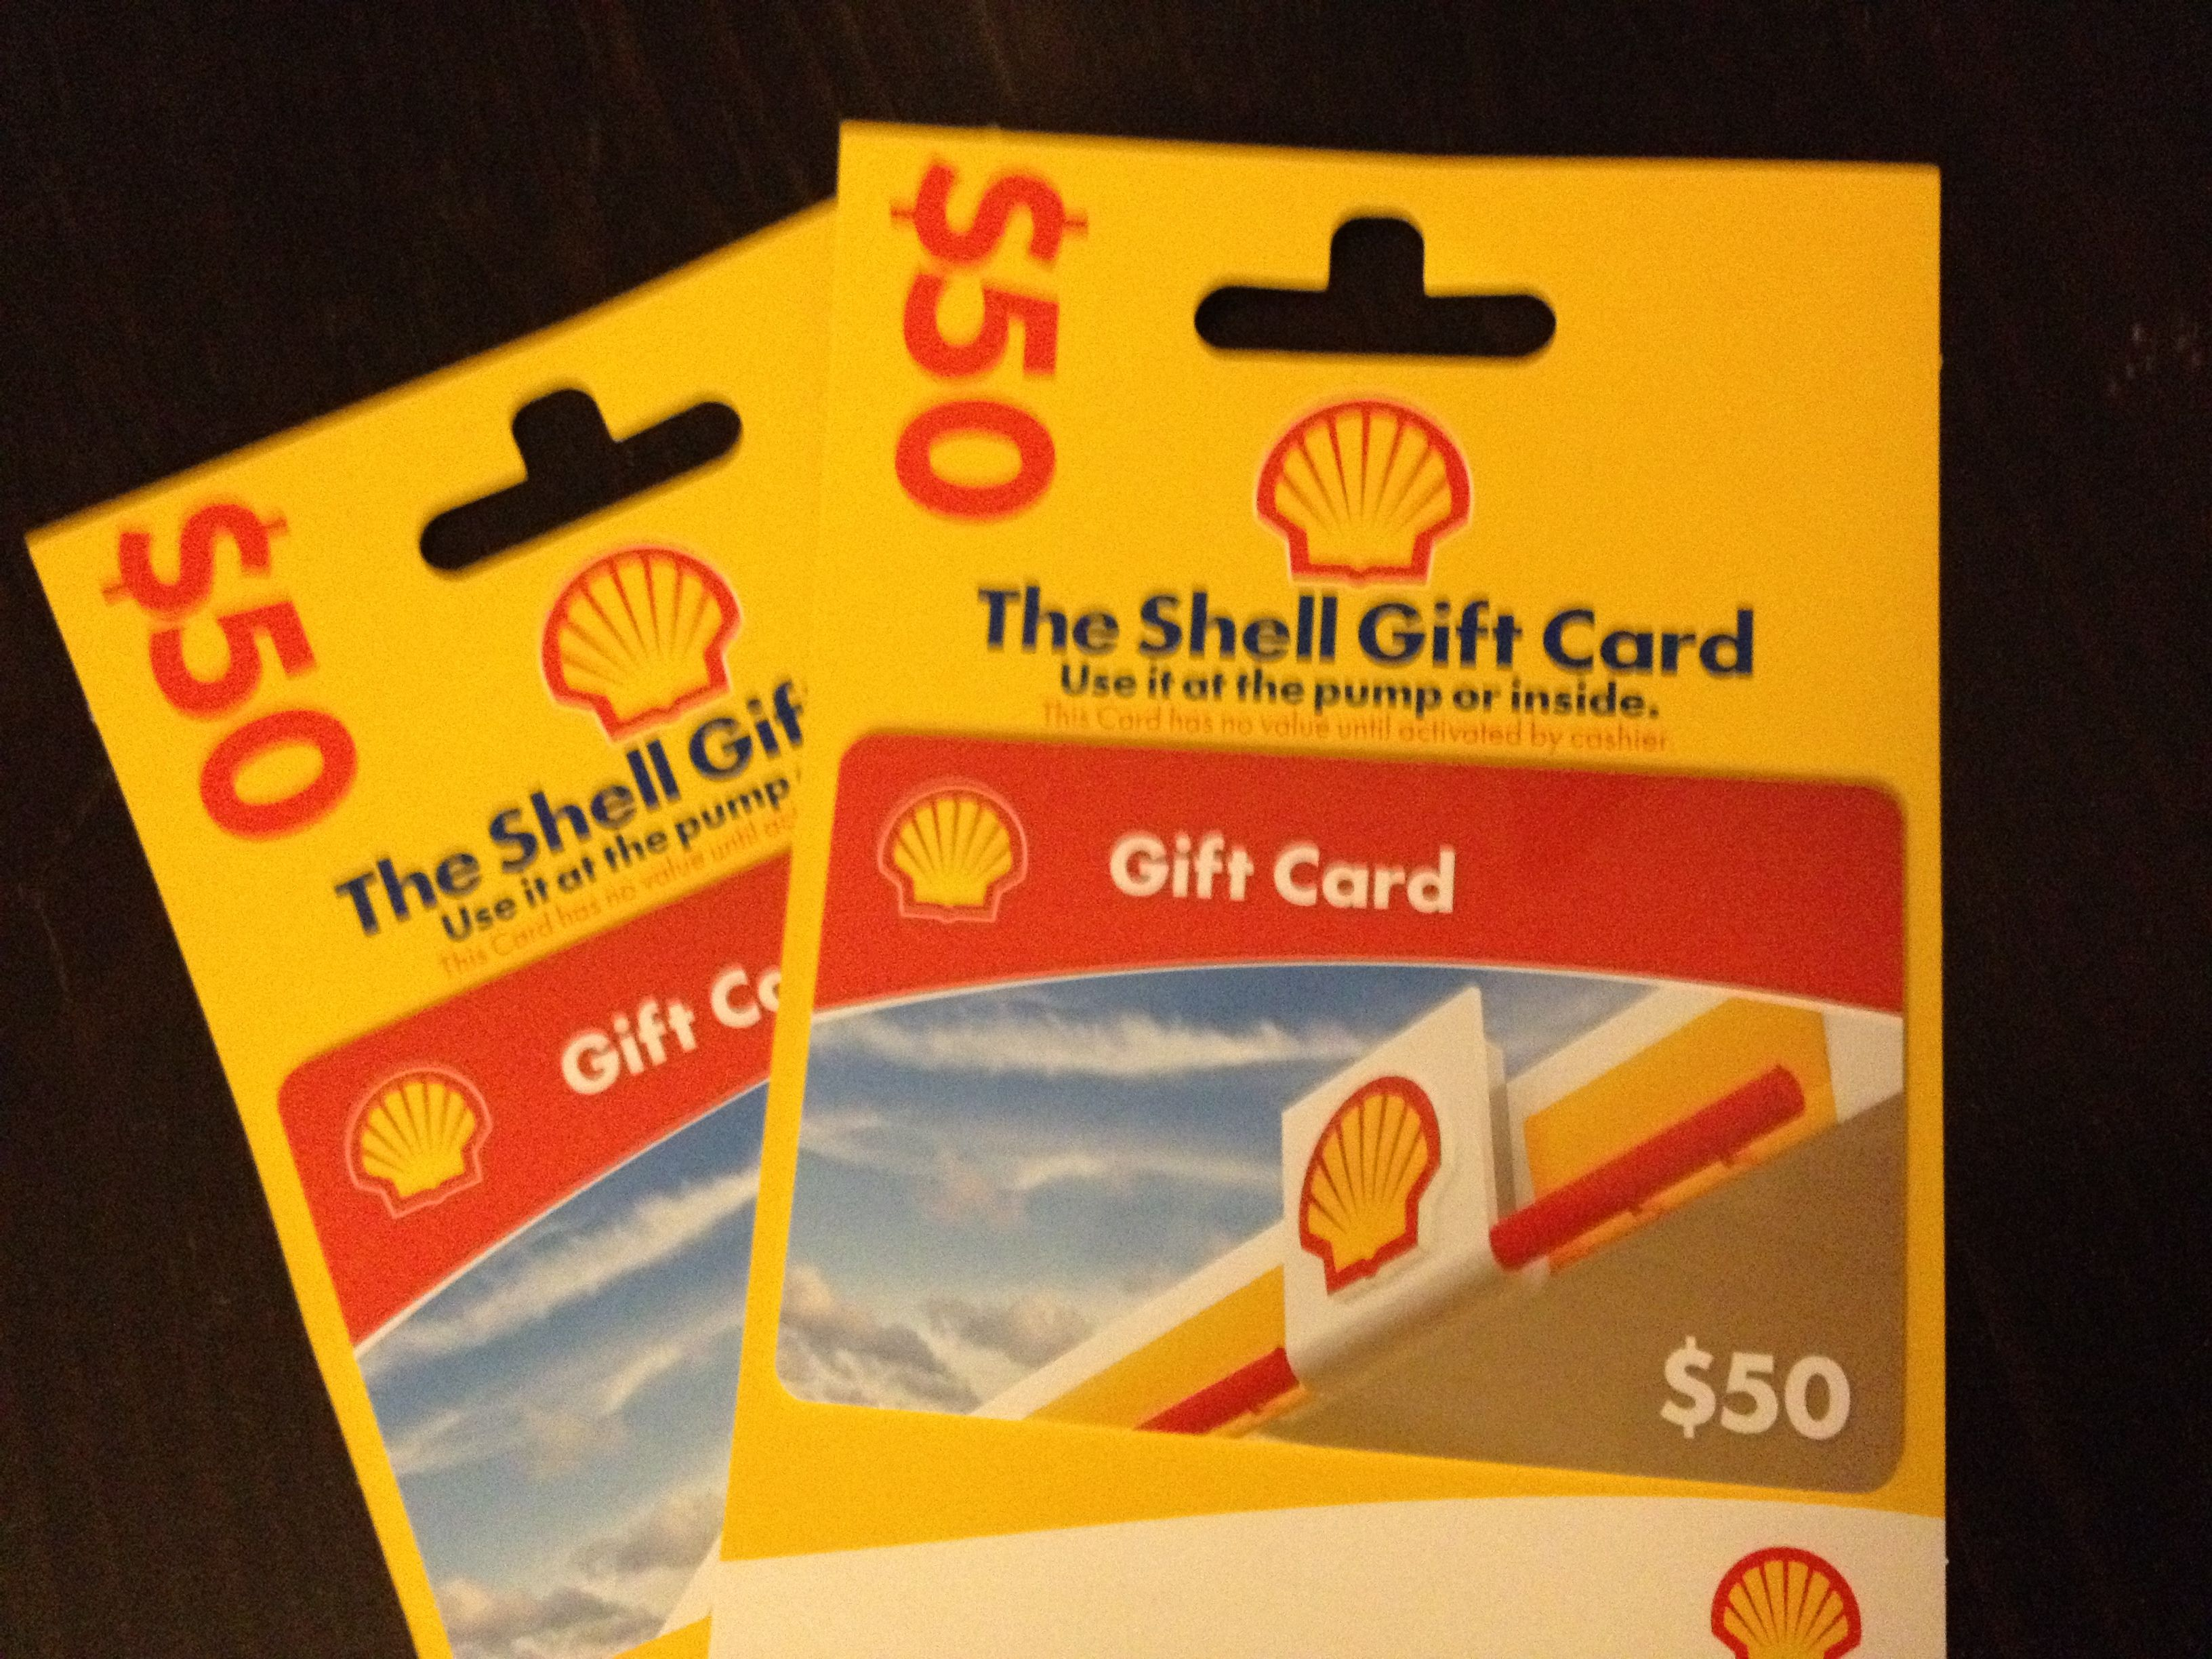 How To Get Free Shell Gift Card Generator: http://cracked-treasure ...